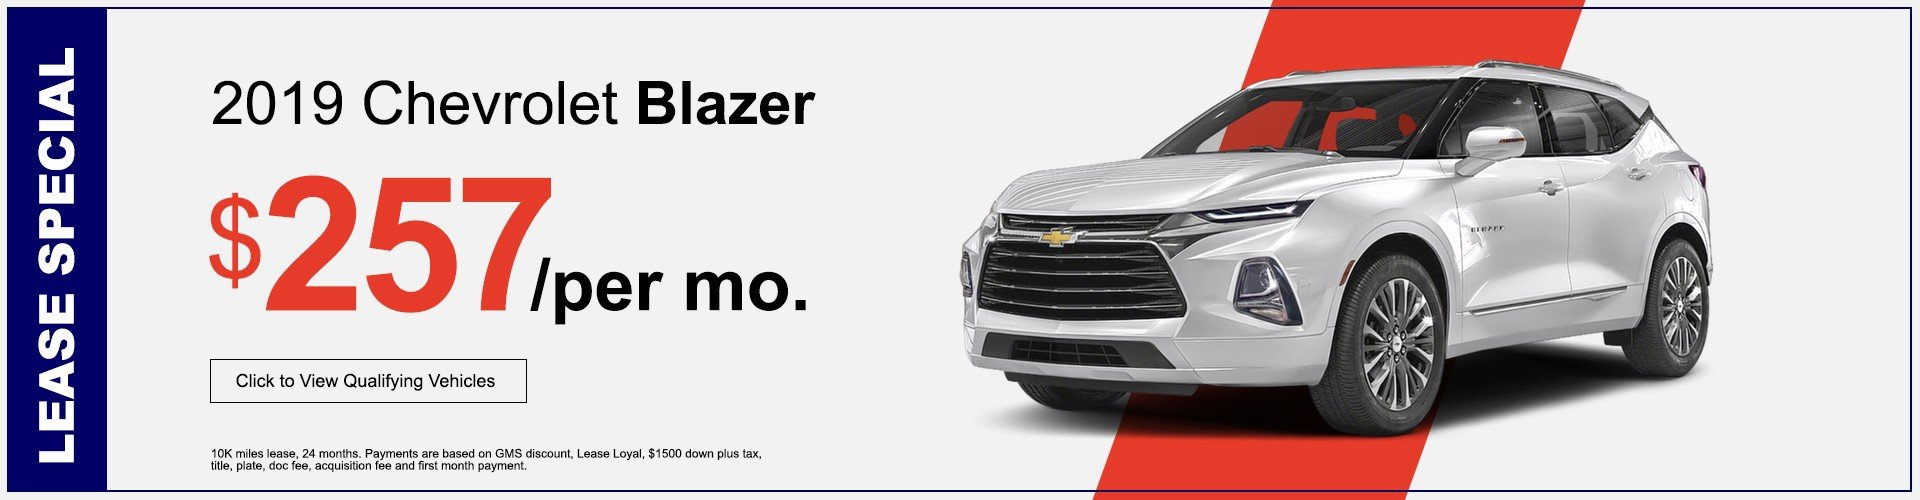 Chevrolet Blazer lease offer